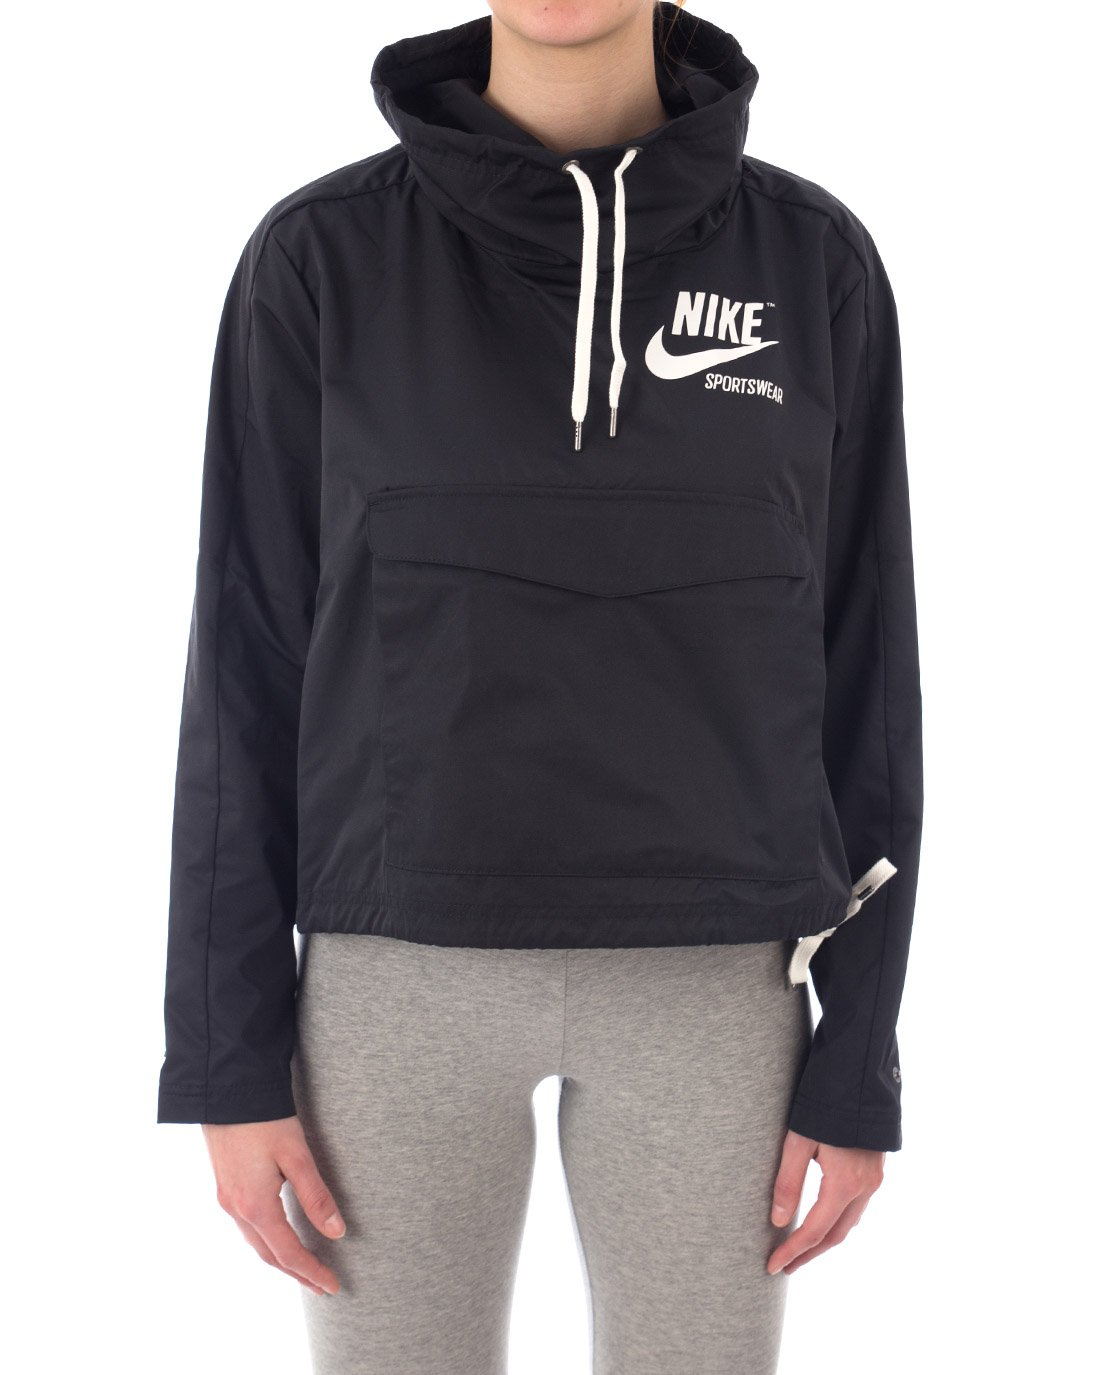 NIKE Womens W NSW Jacket Pullover Archive 920913-010_M - Black/Black